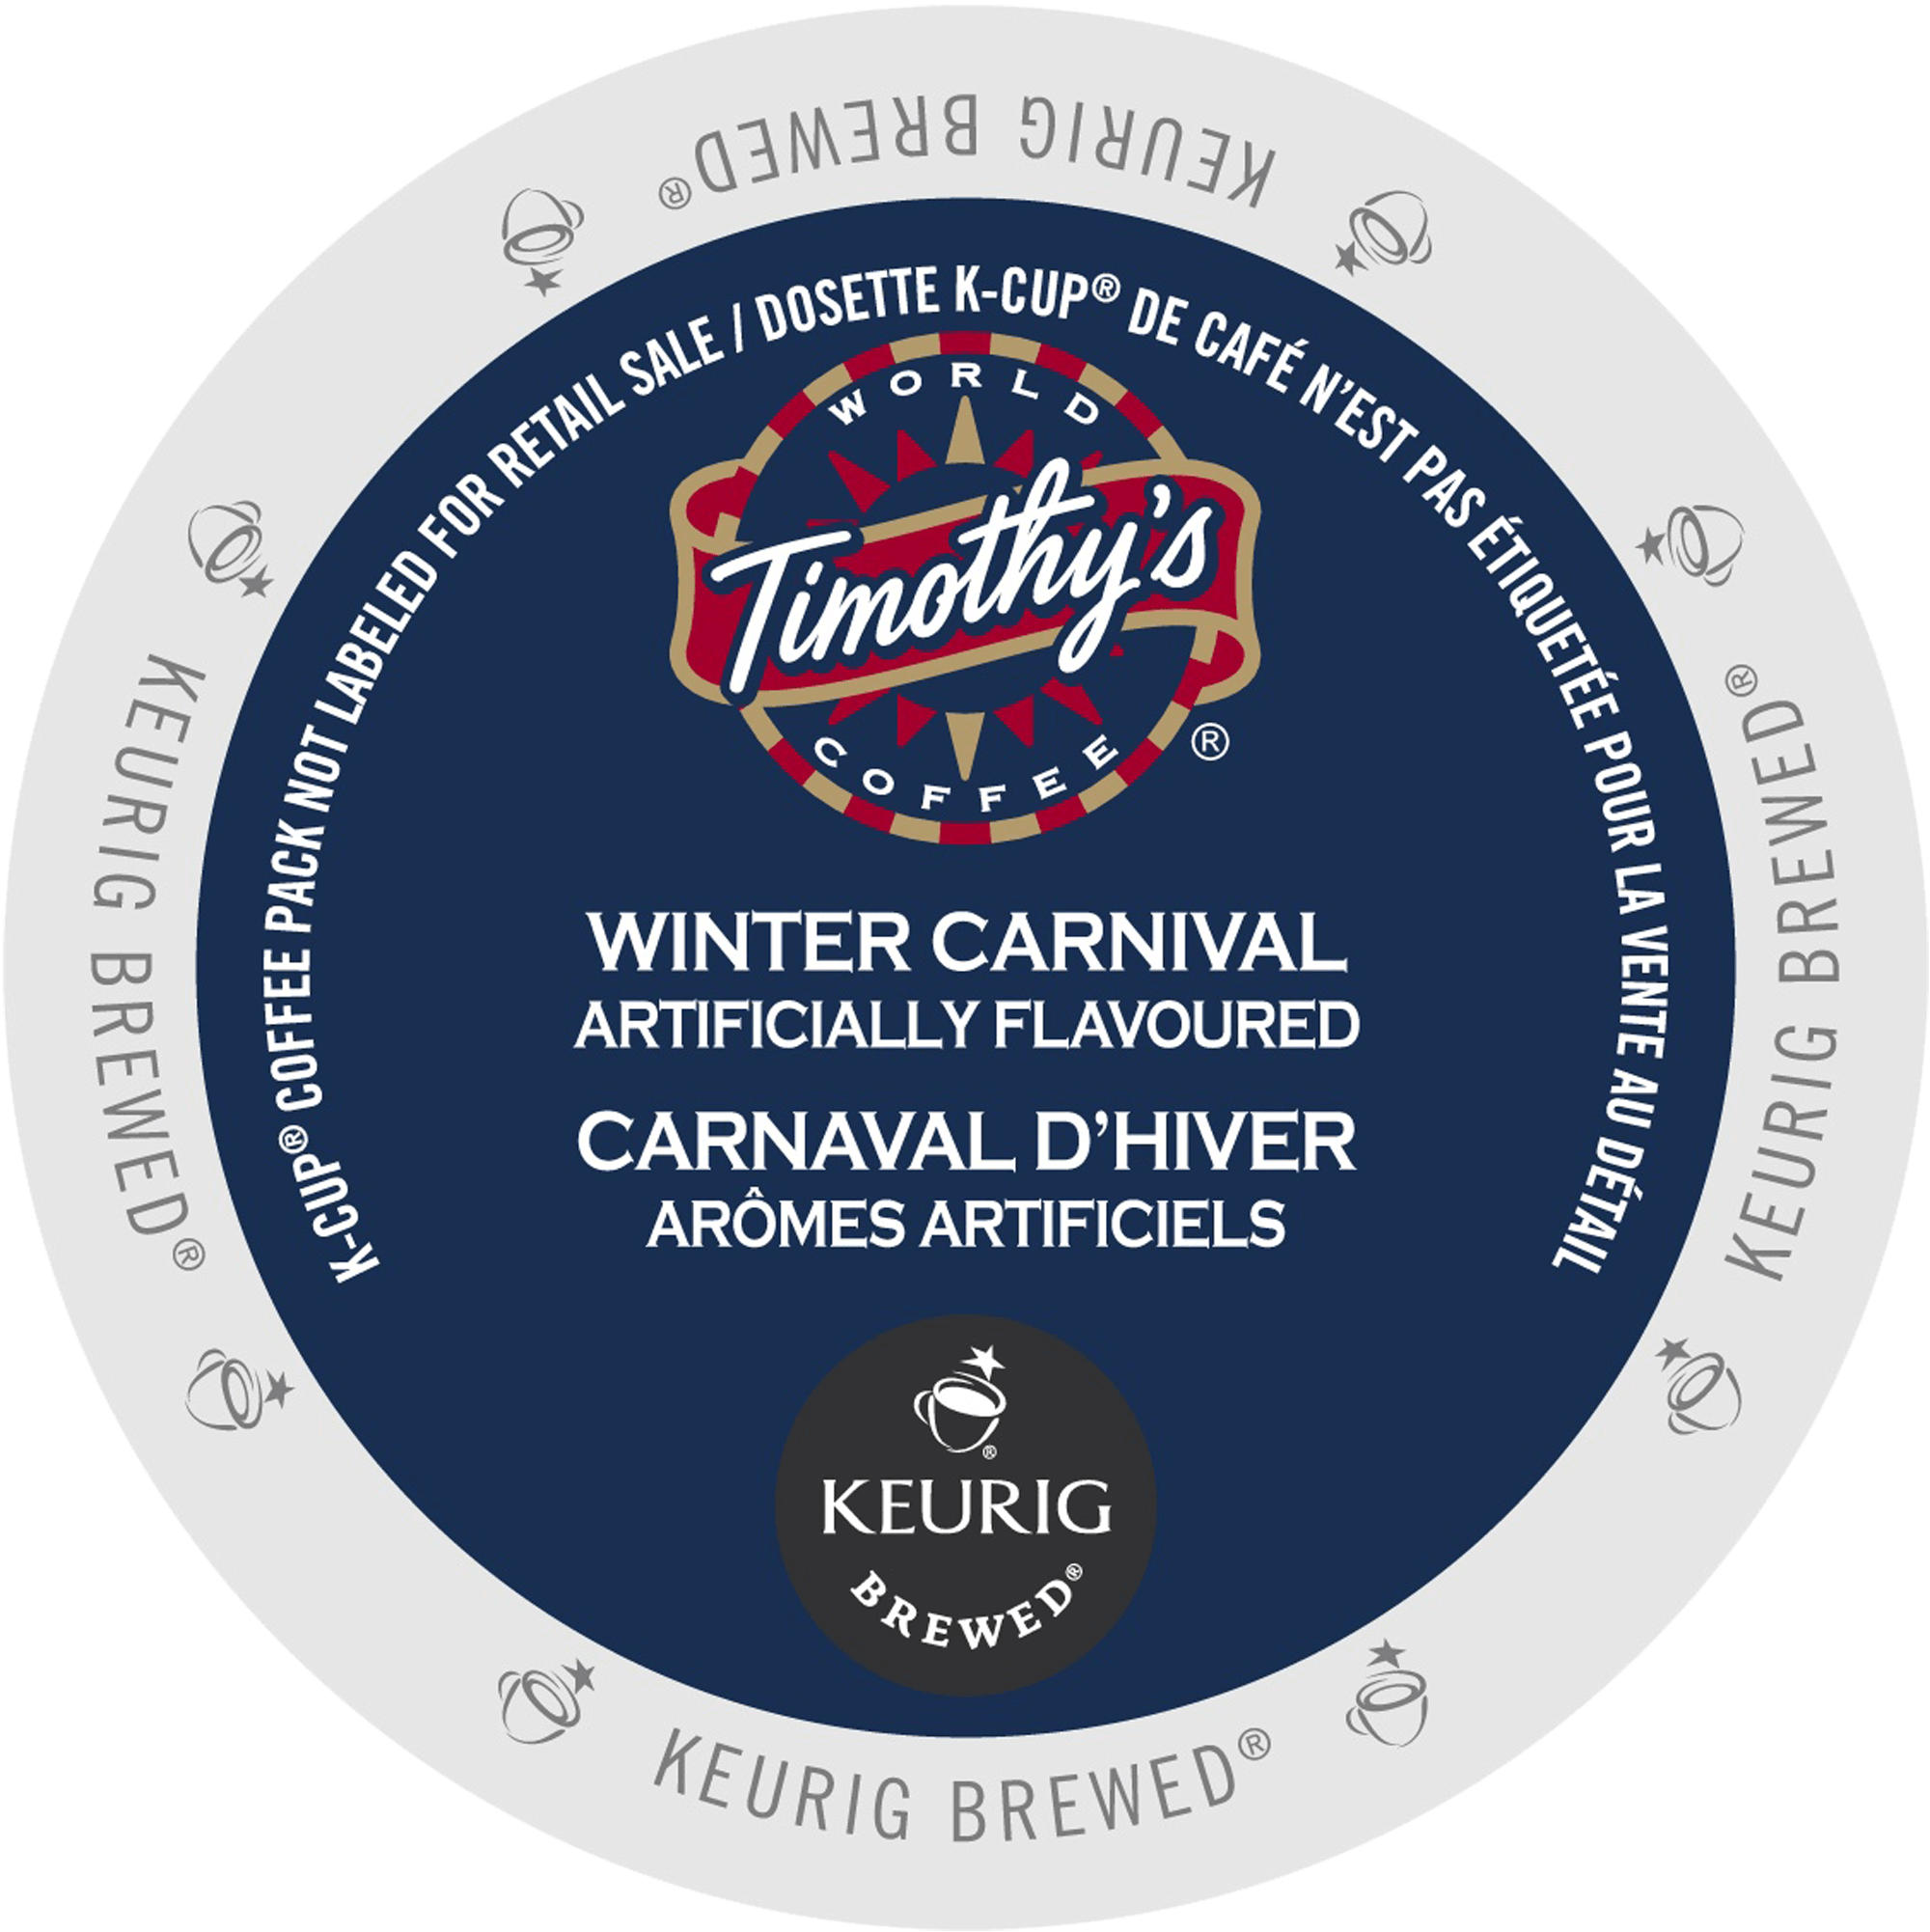 winter-carnival-coffee-timothys-k-cup_ca_general